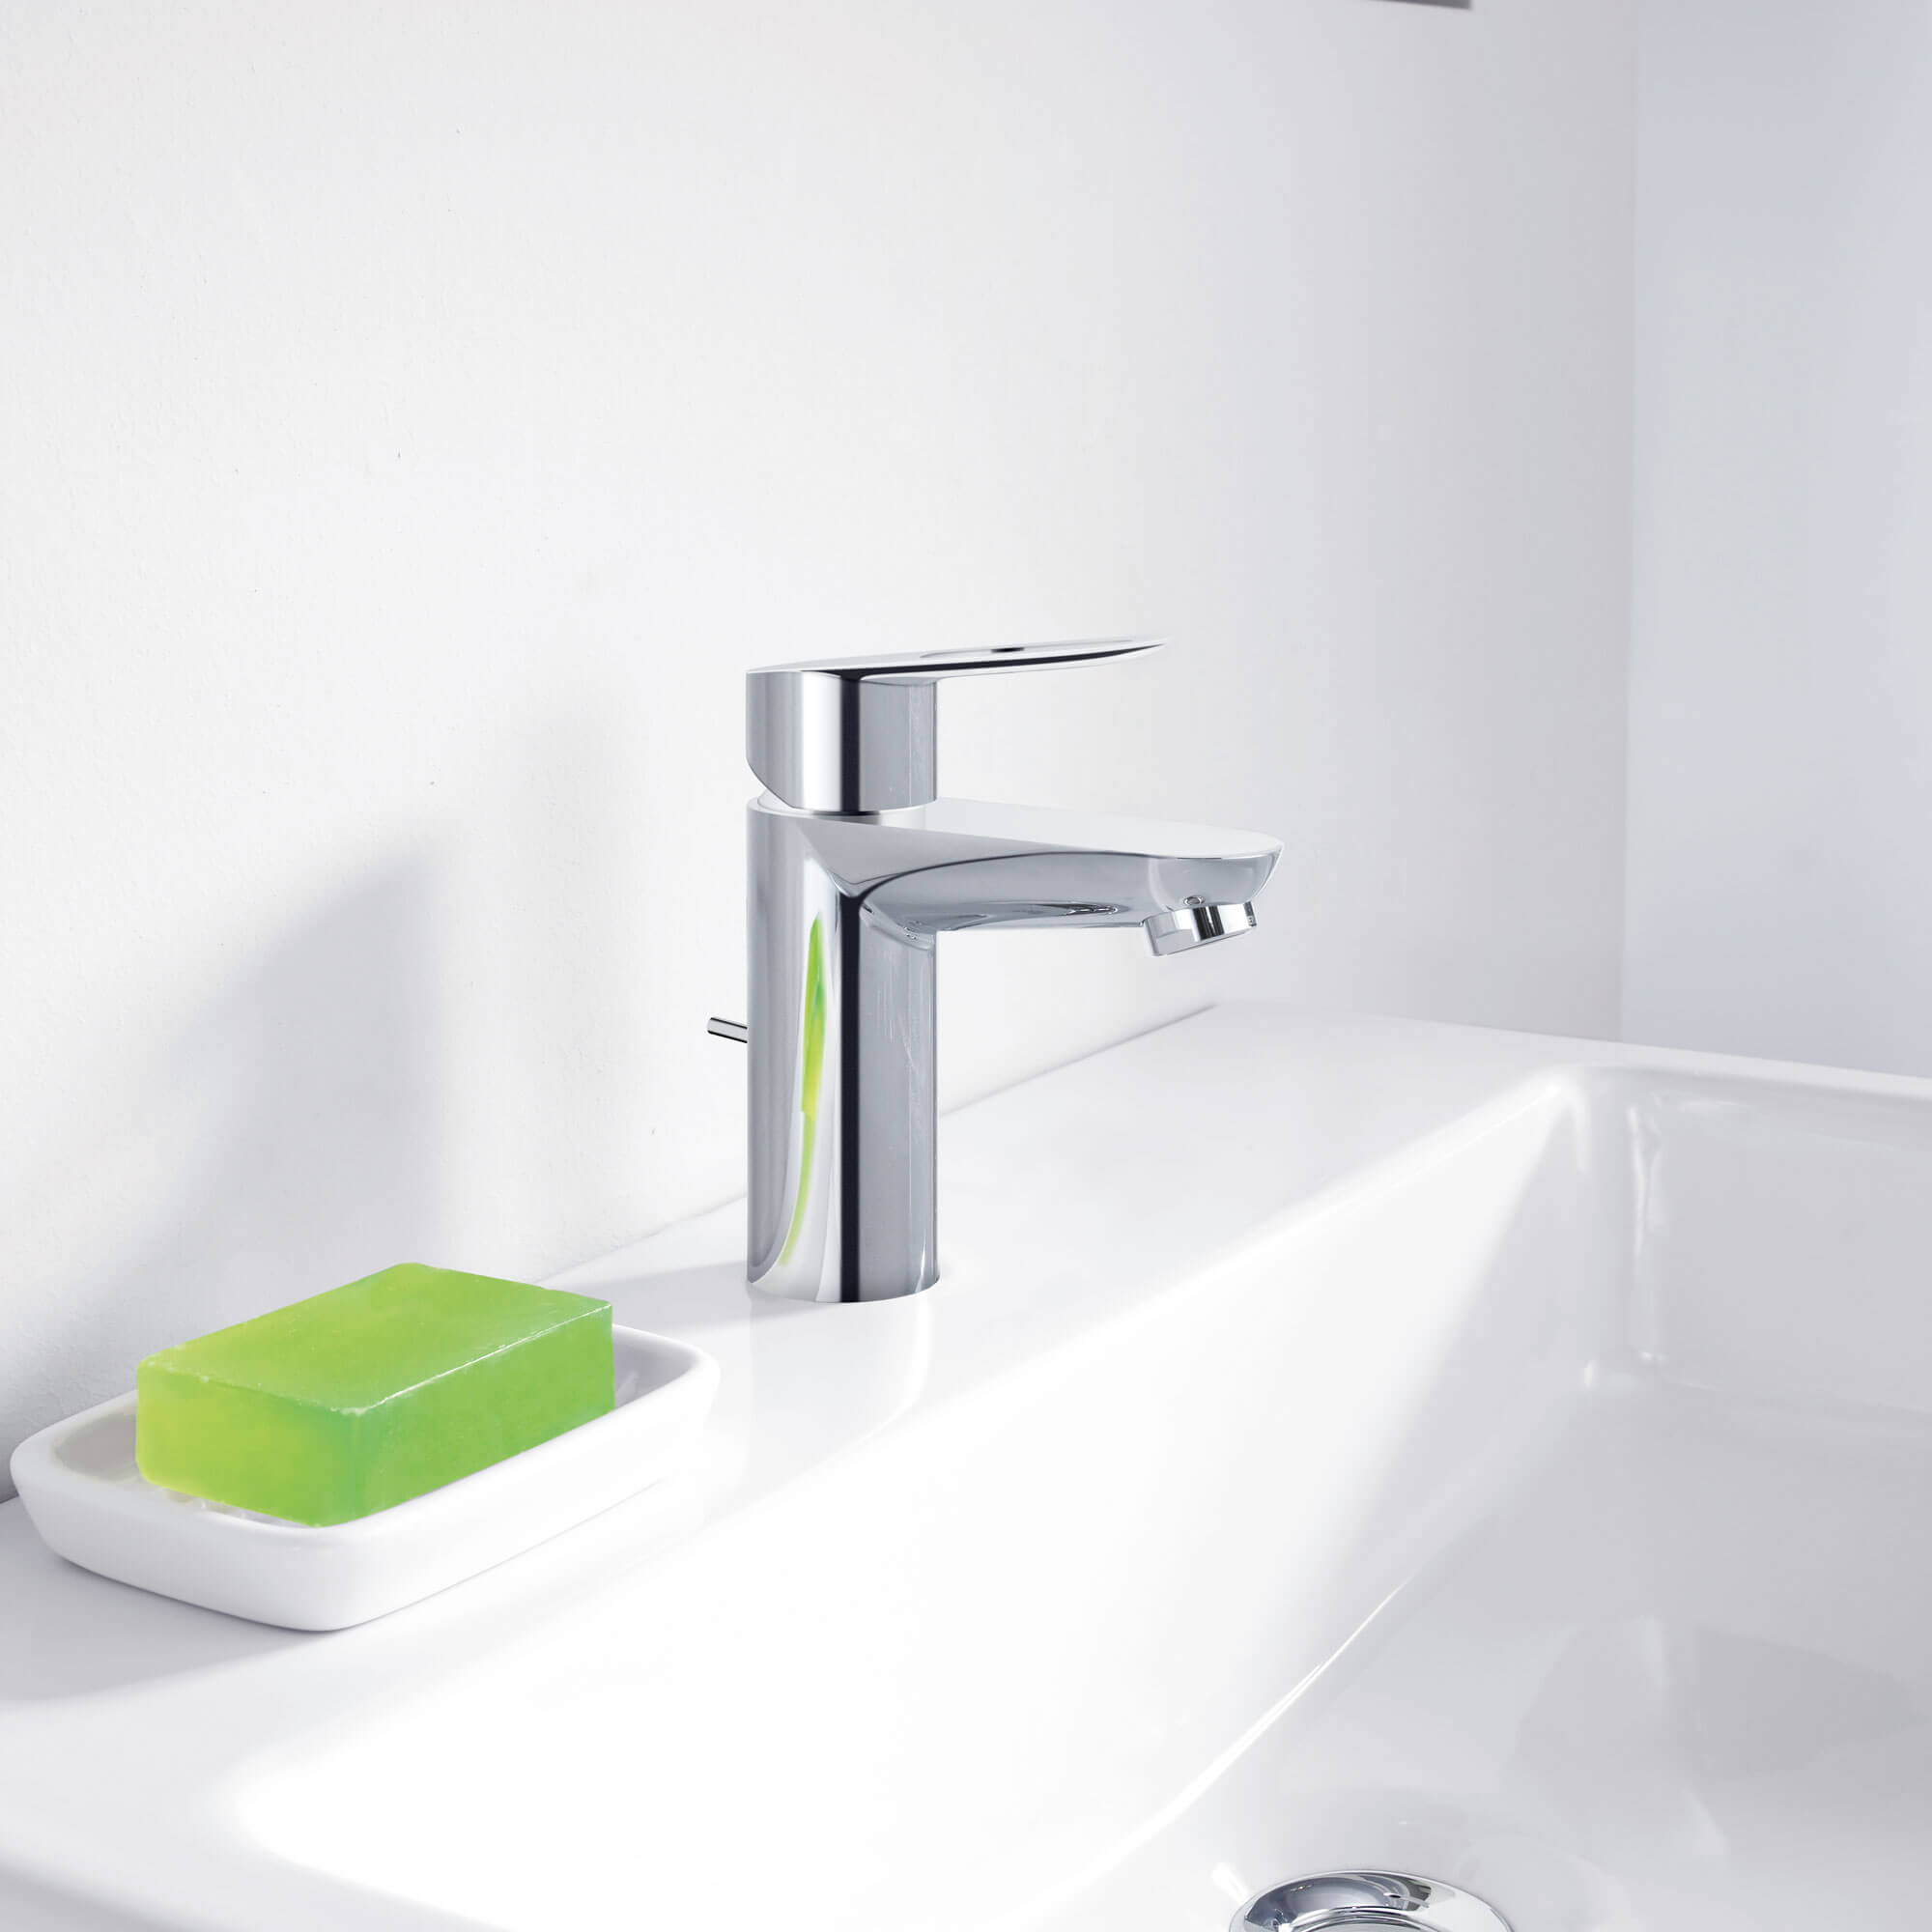 Bauloop Bathroom Sink Faucet by Grohe